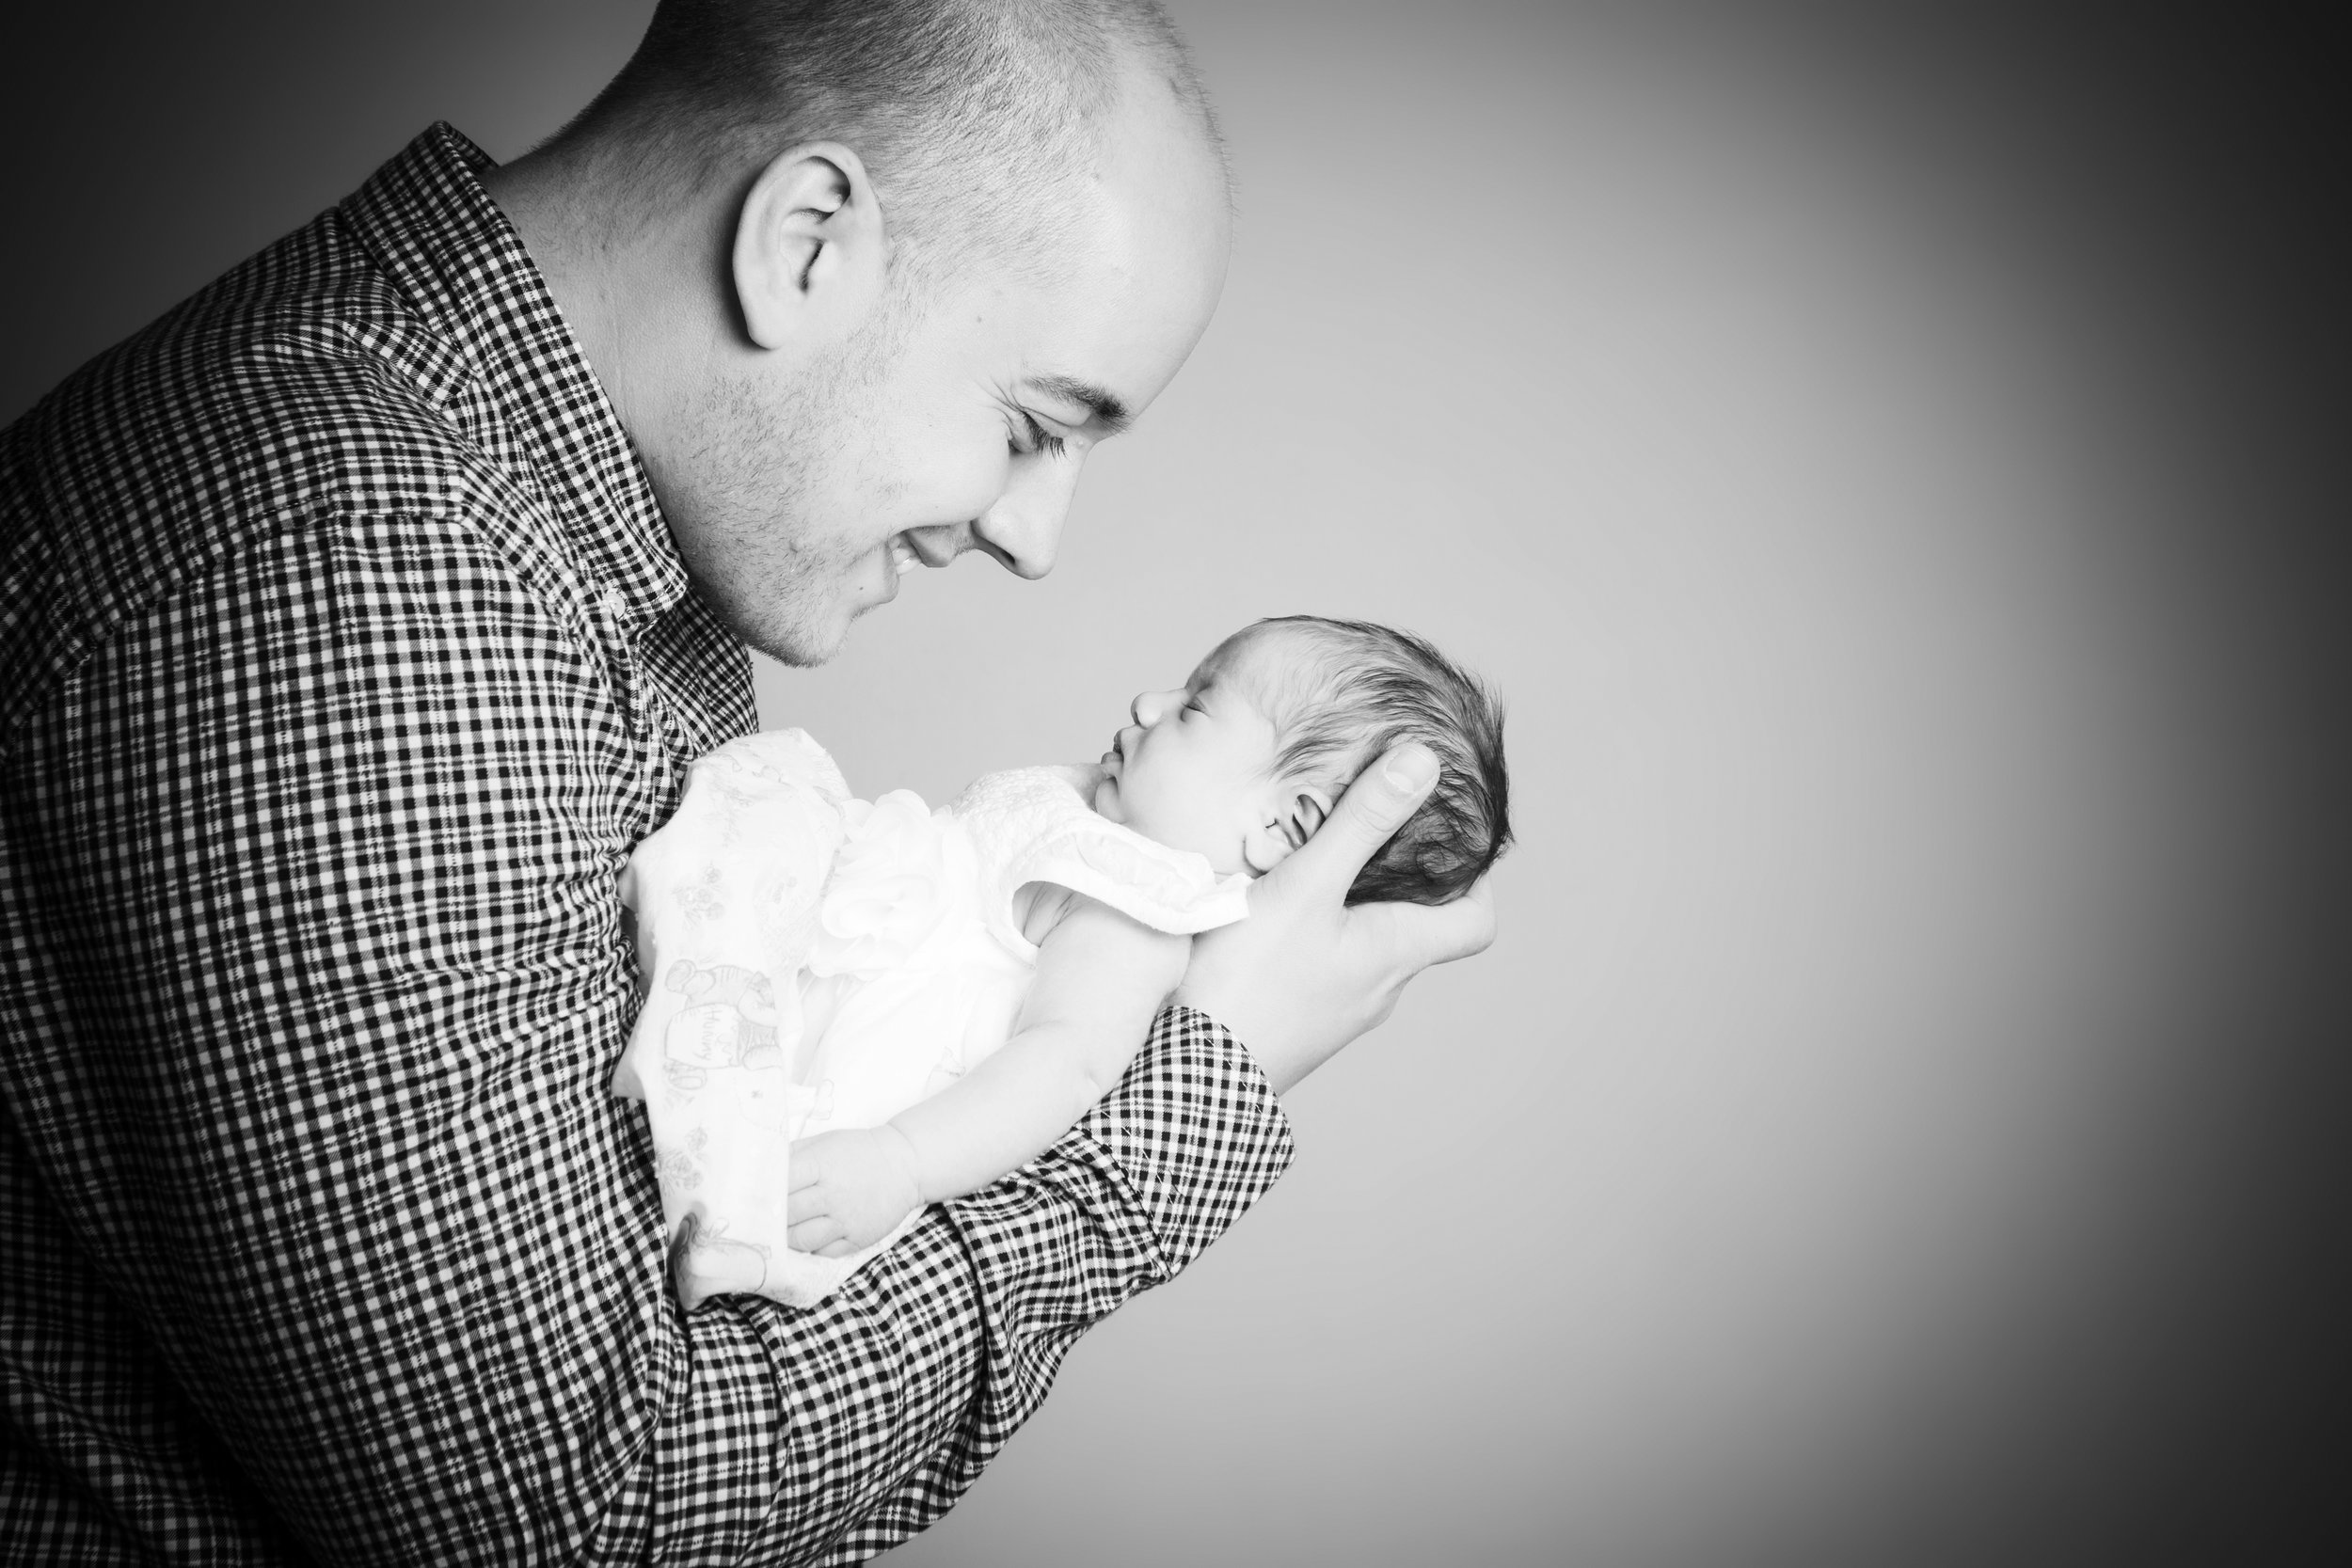 zigzag-photography-leicester-newborn-baby-family-photographer-photography-zig-zag-dad